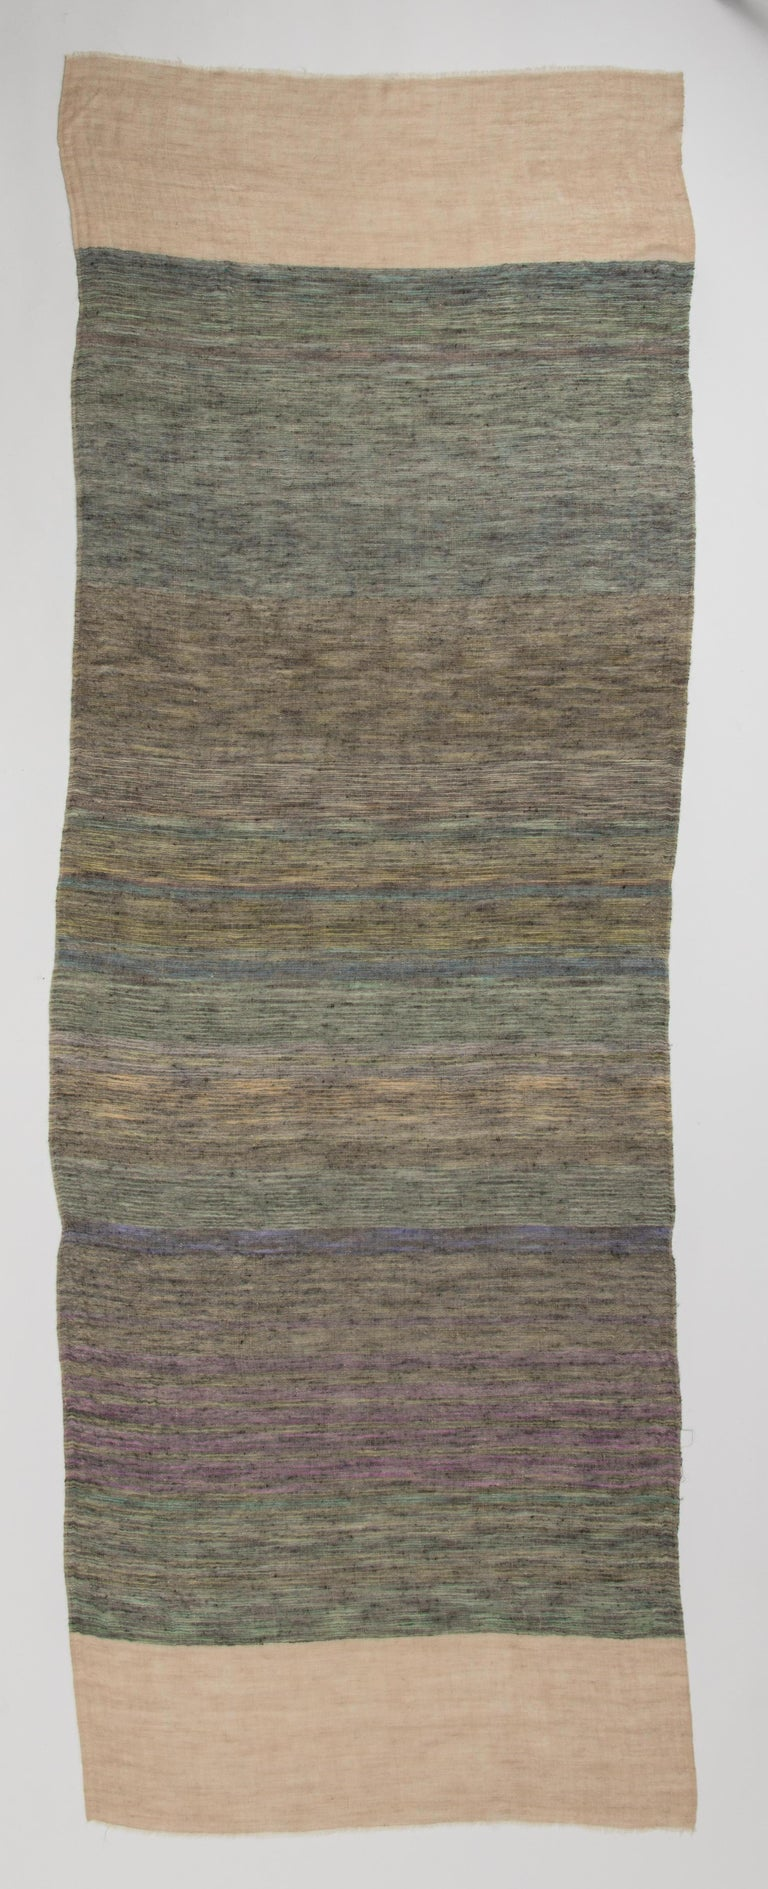 Kashmir Hand Woven Variegated Aqua Lavender  100 % Natural Cashmere Shawl In New Condition For Sale In New York, NY